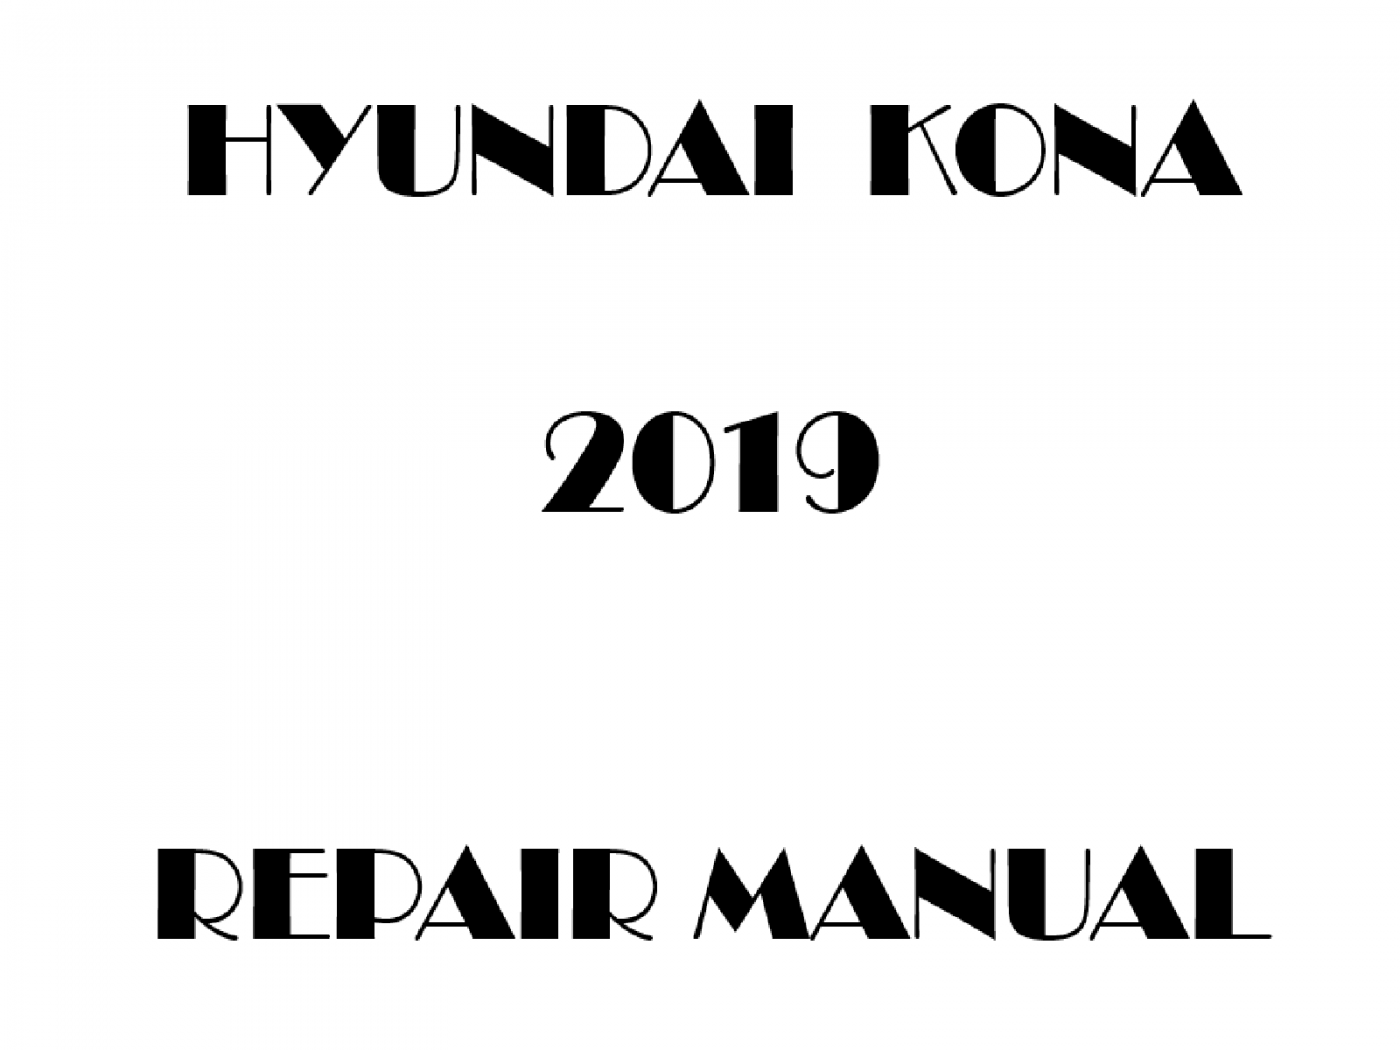 2019 Hyundai KONA repair manual